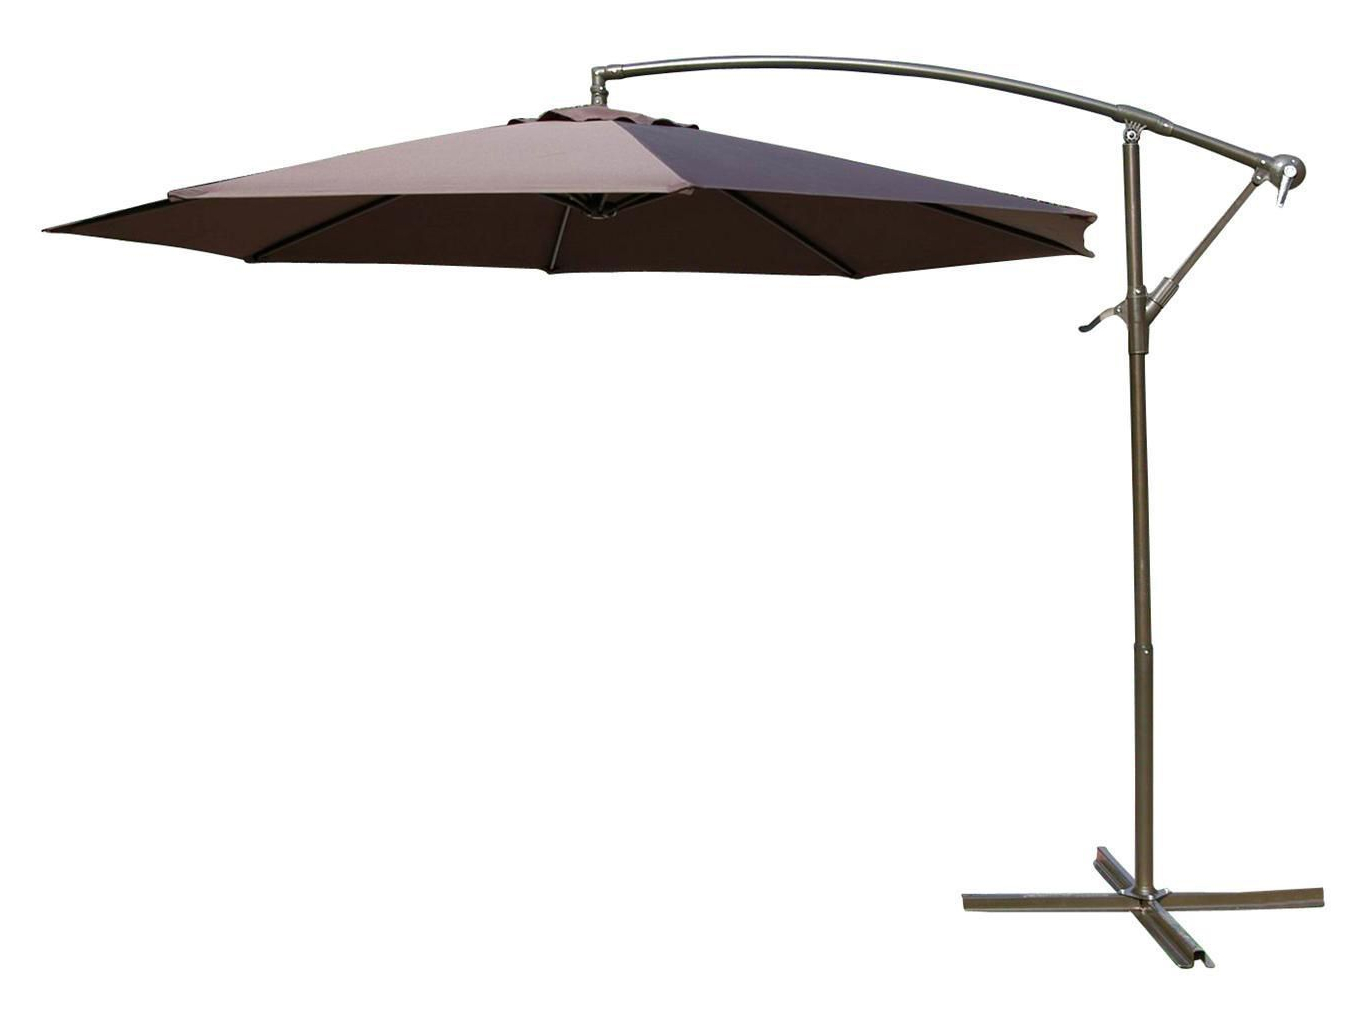 Cantilever Umbrellas Throughout Famous Henryka Ltd Henryka 10' Cantilever Umbrella – Black (View 4 of 20)